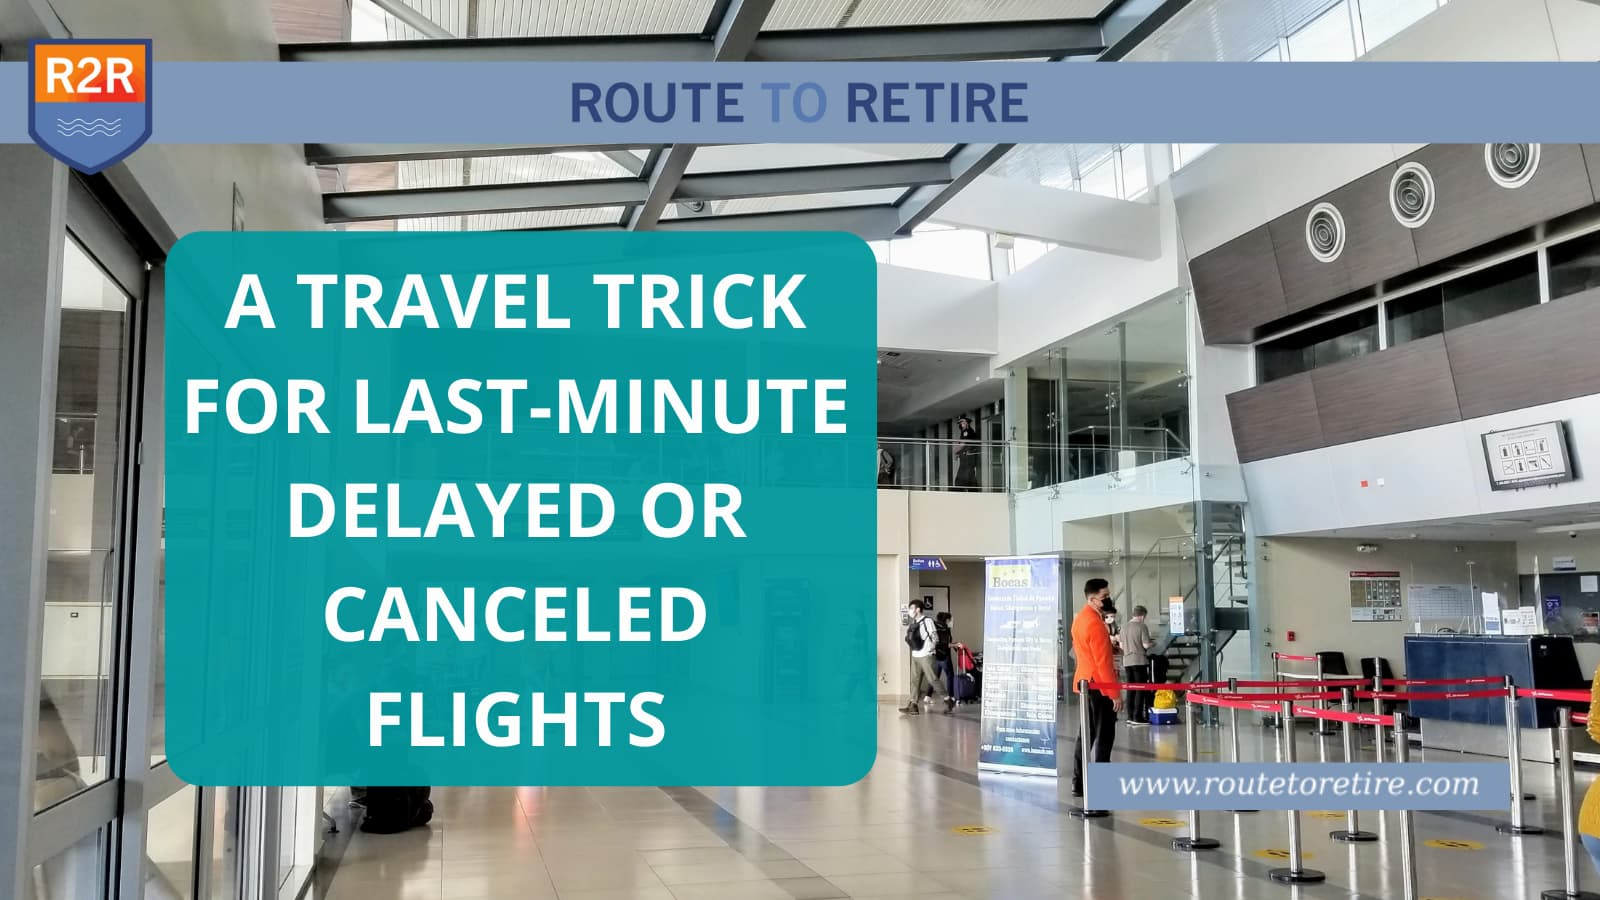 A Travel Trick for Last-Minute Delayed or Canceled Flights